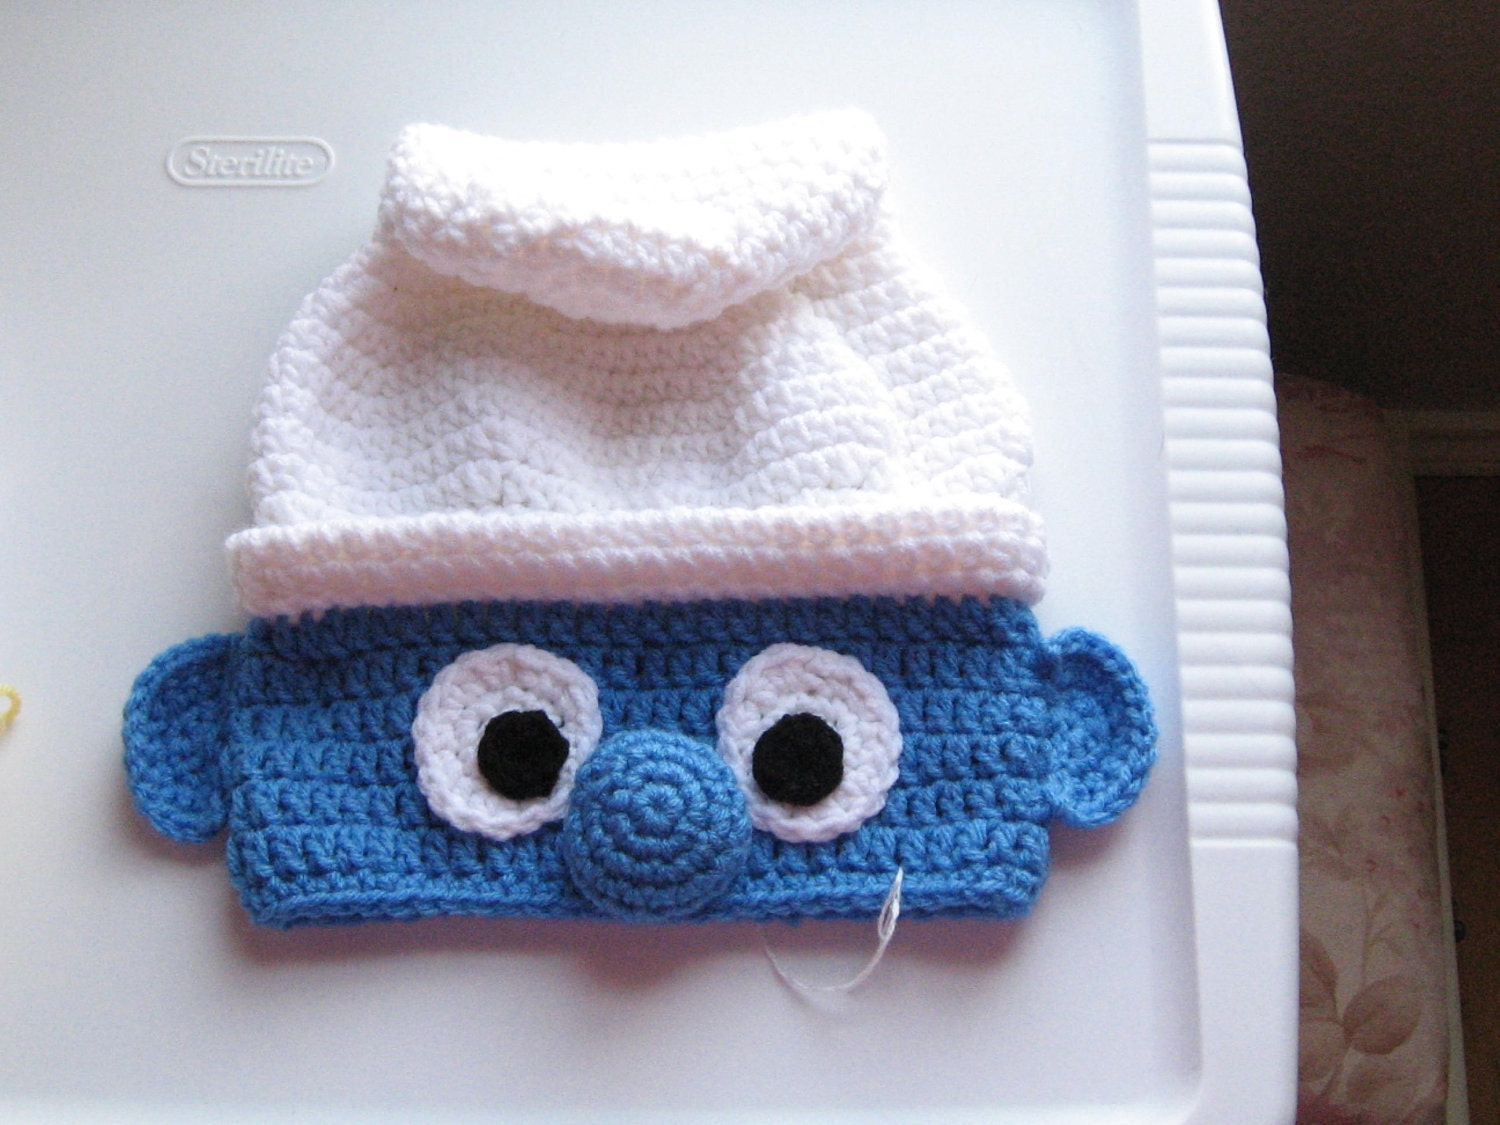 1000+ images about Crochet Character Hats on Pinterest - photo#33